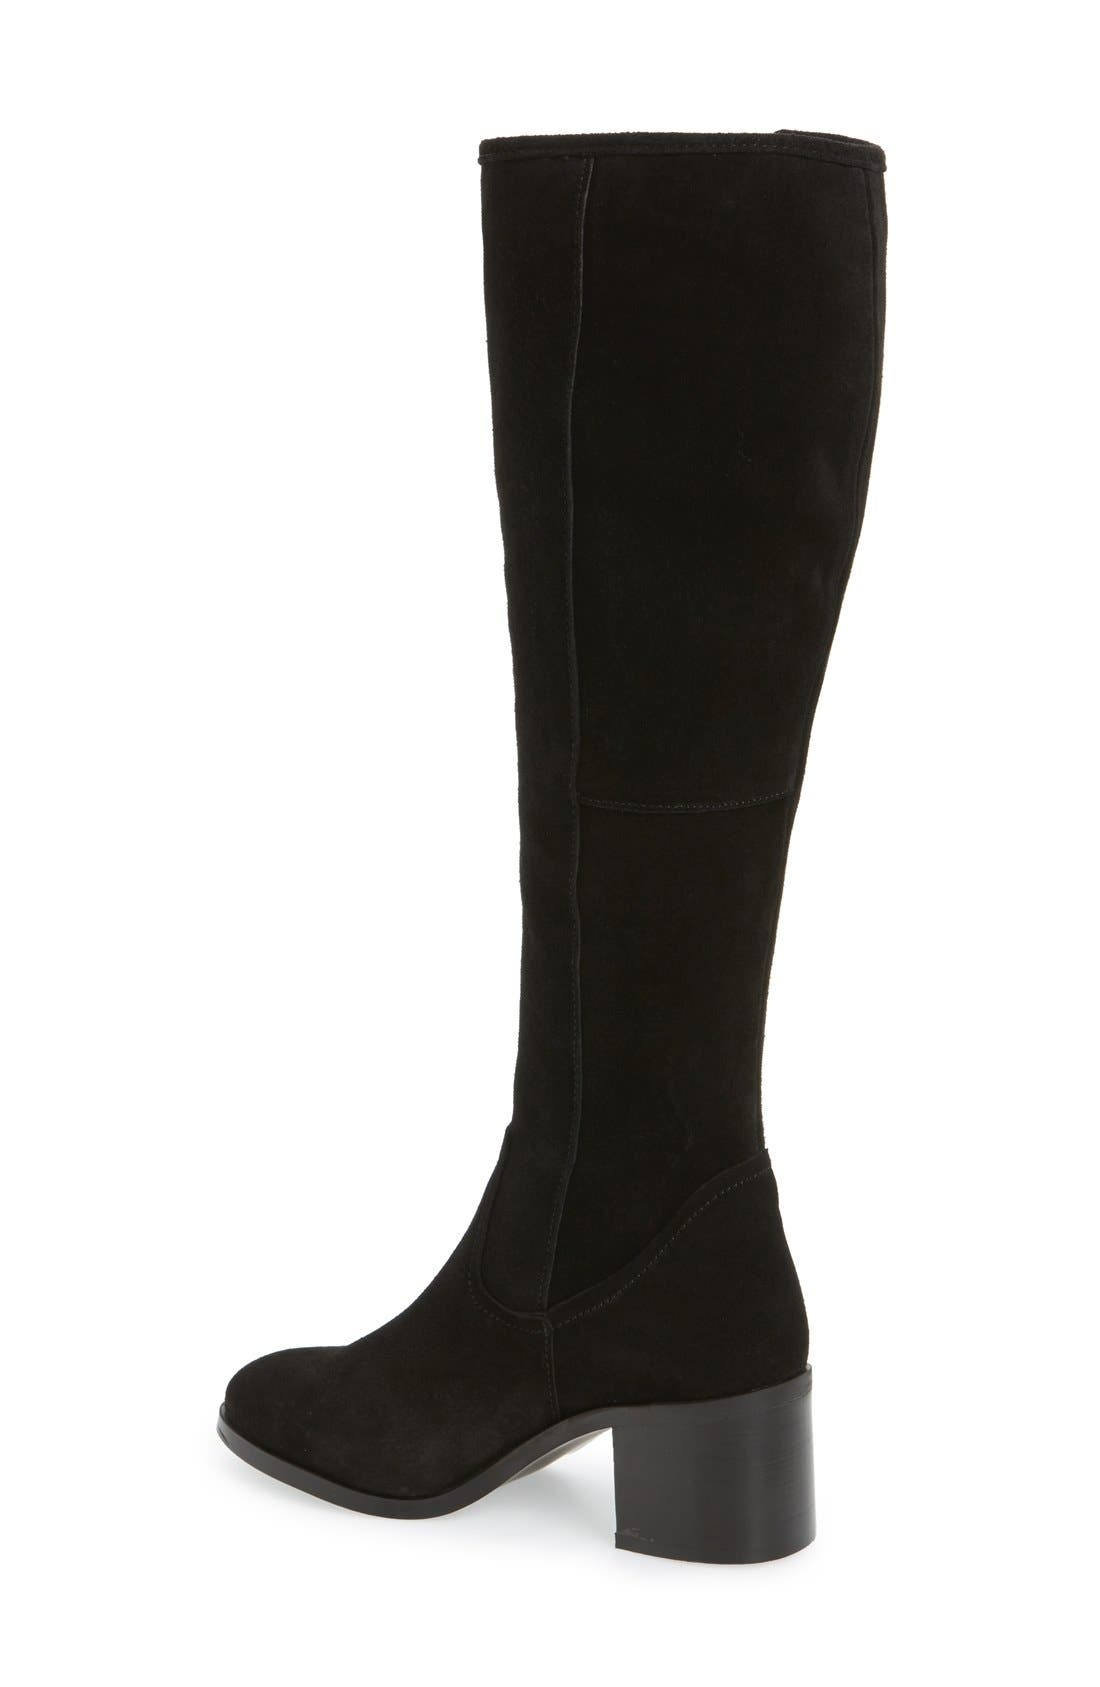 Lasso Boot,                             Alternate thumbnail 2, color,                             Black Suede